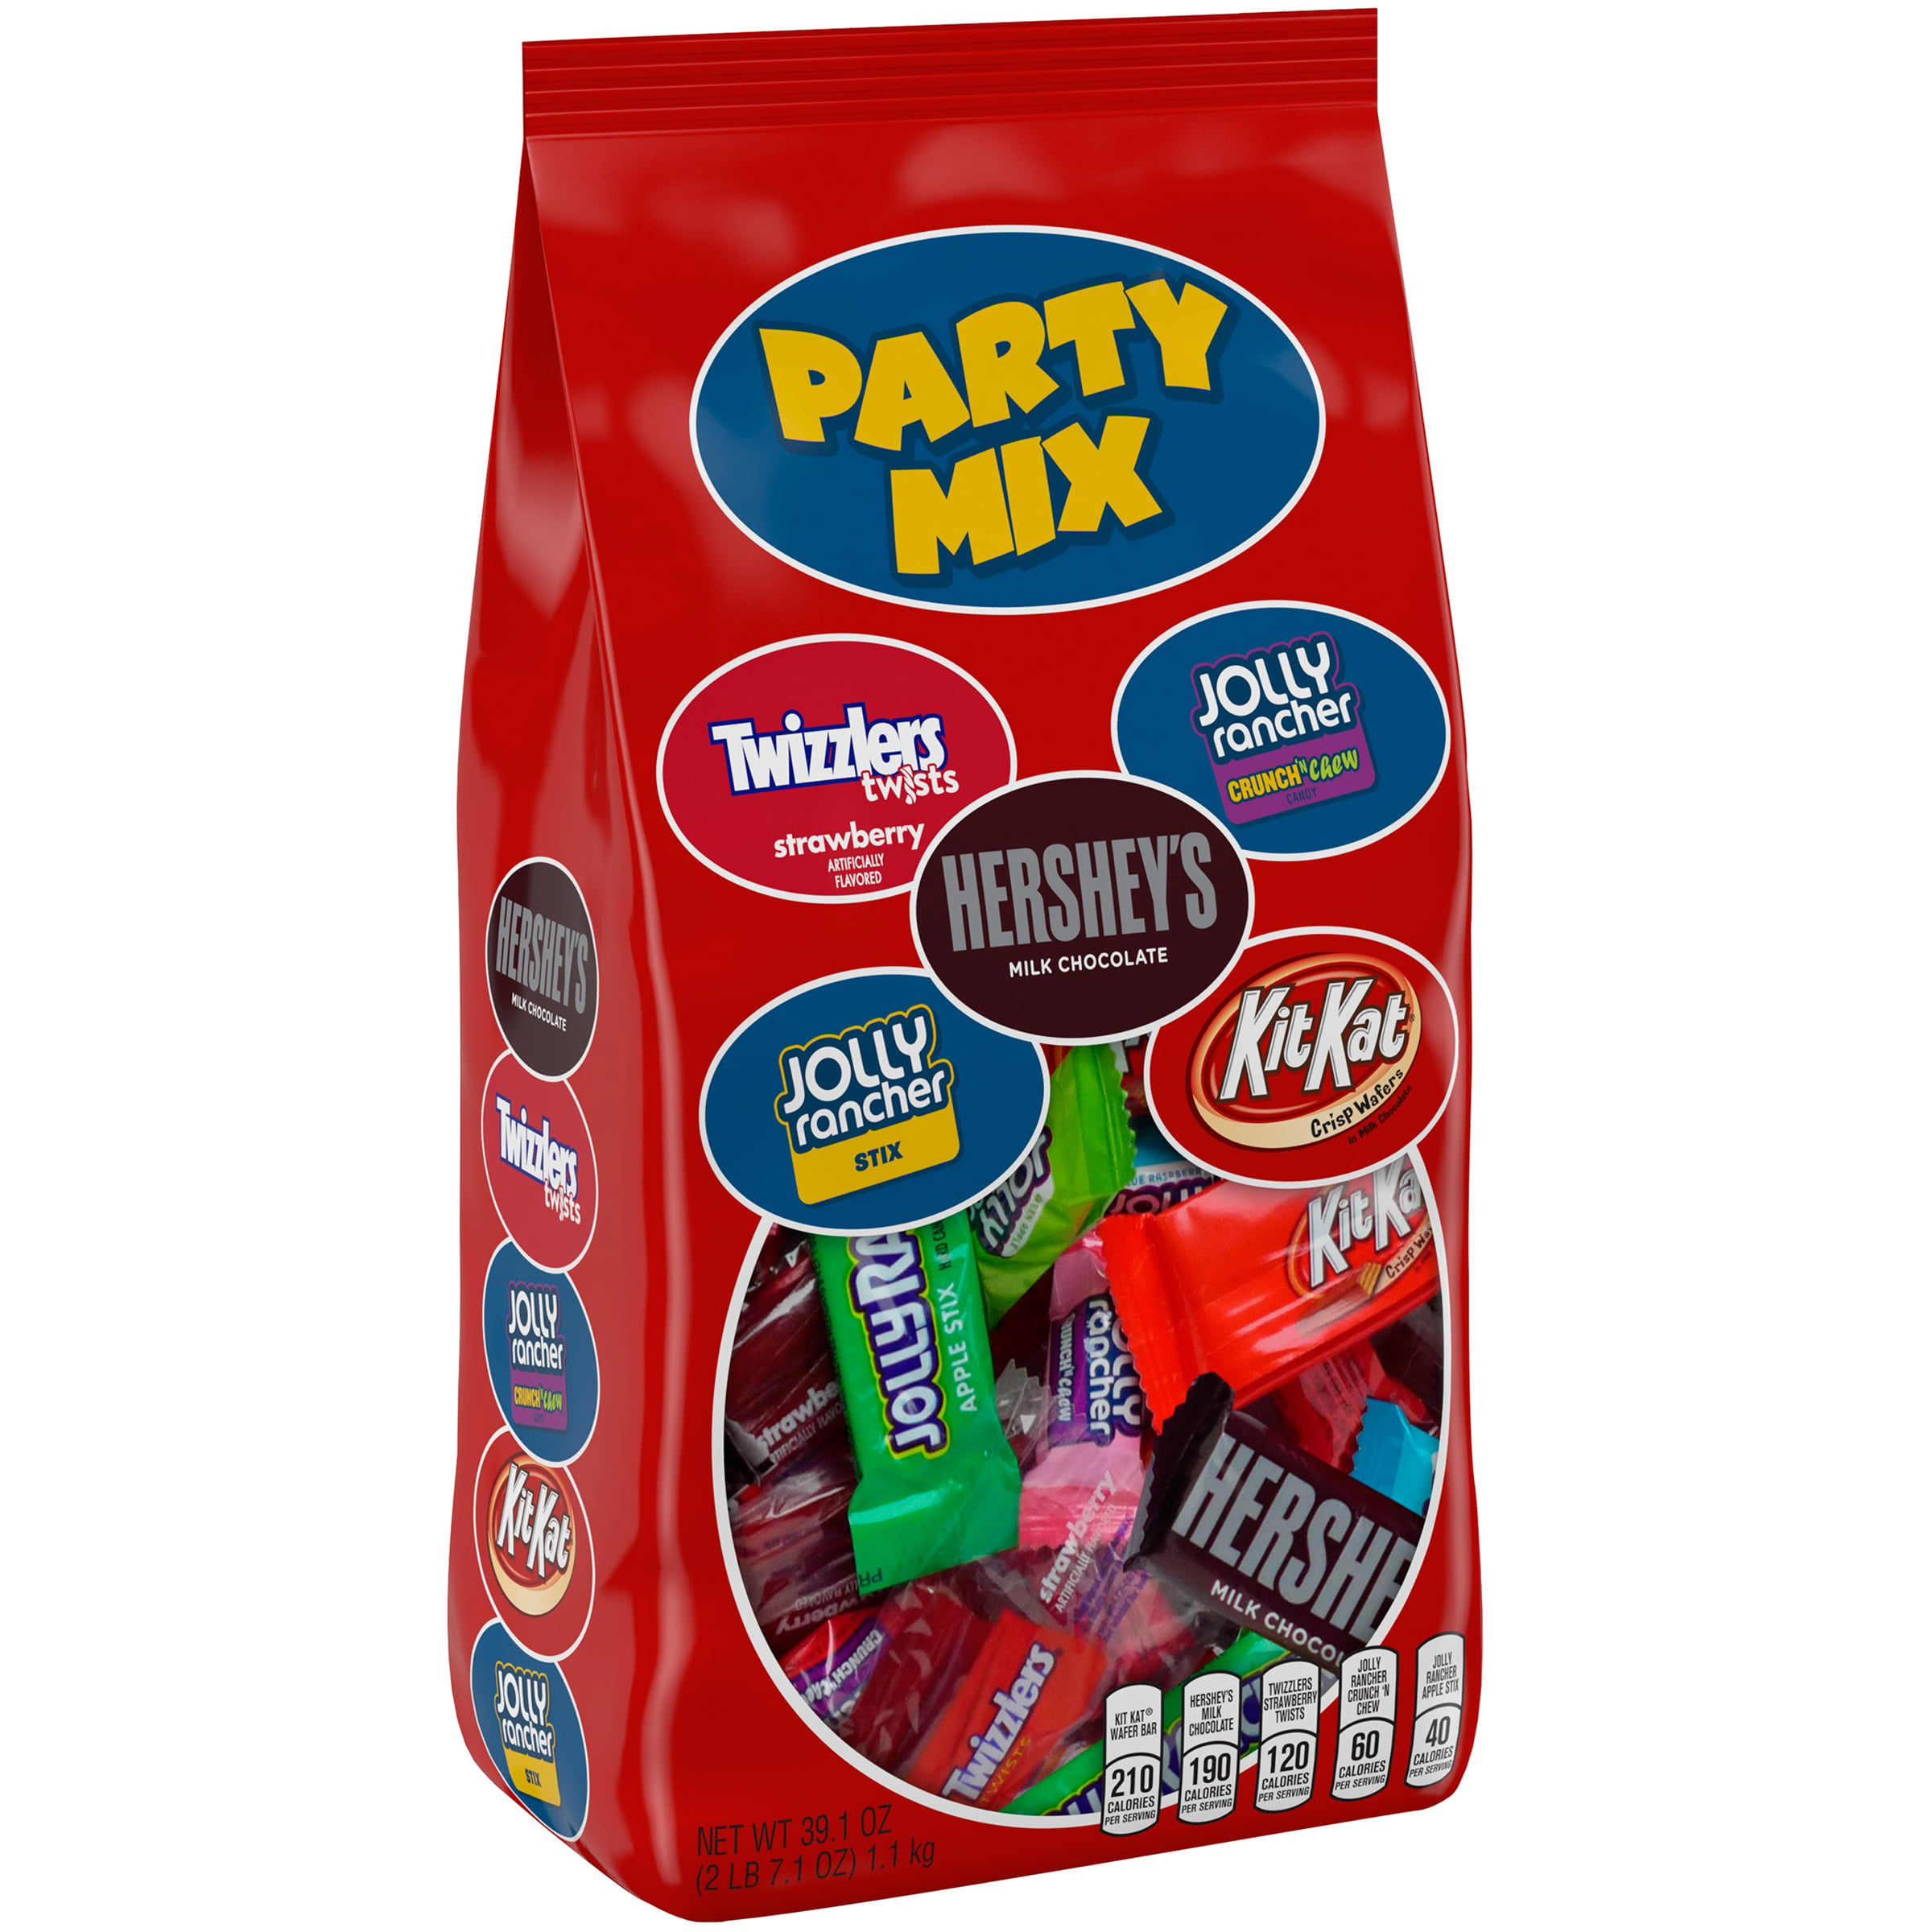 Hershey's Party Mix Candy Assortment, 37.9 oz by Hershey's